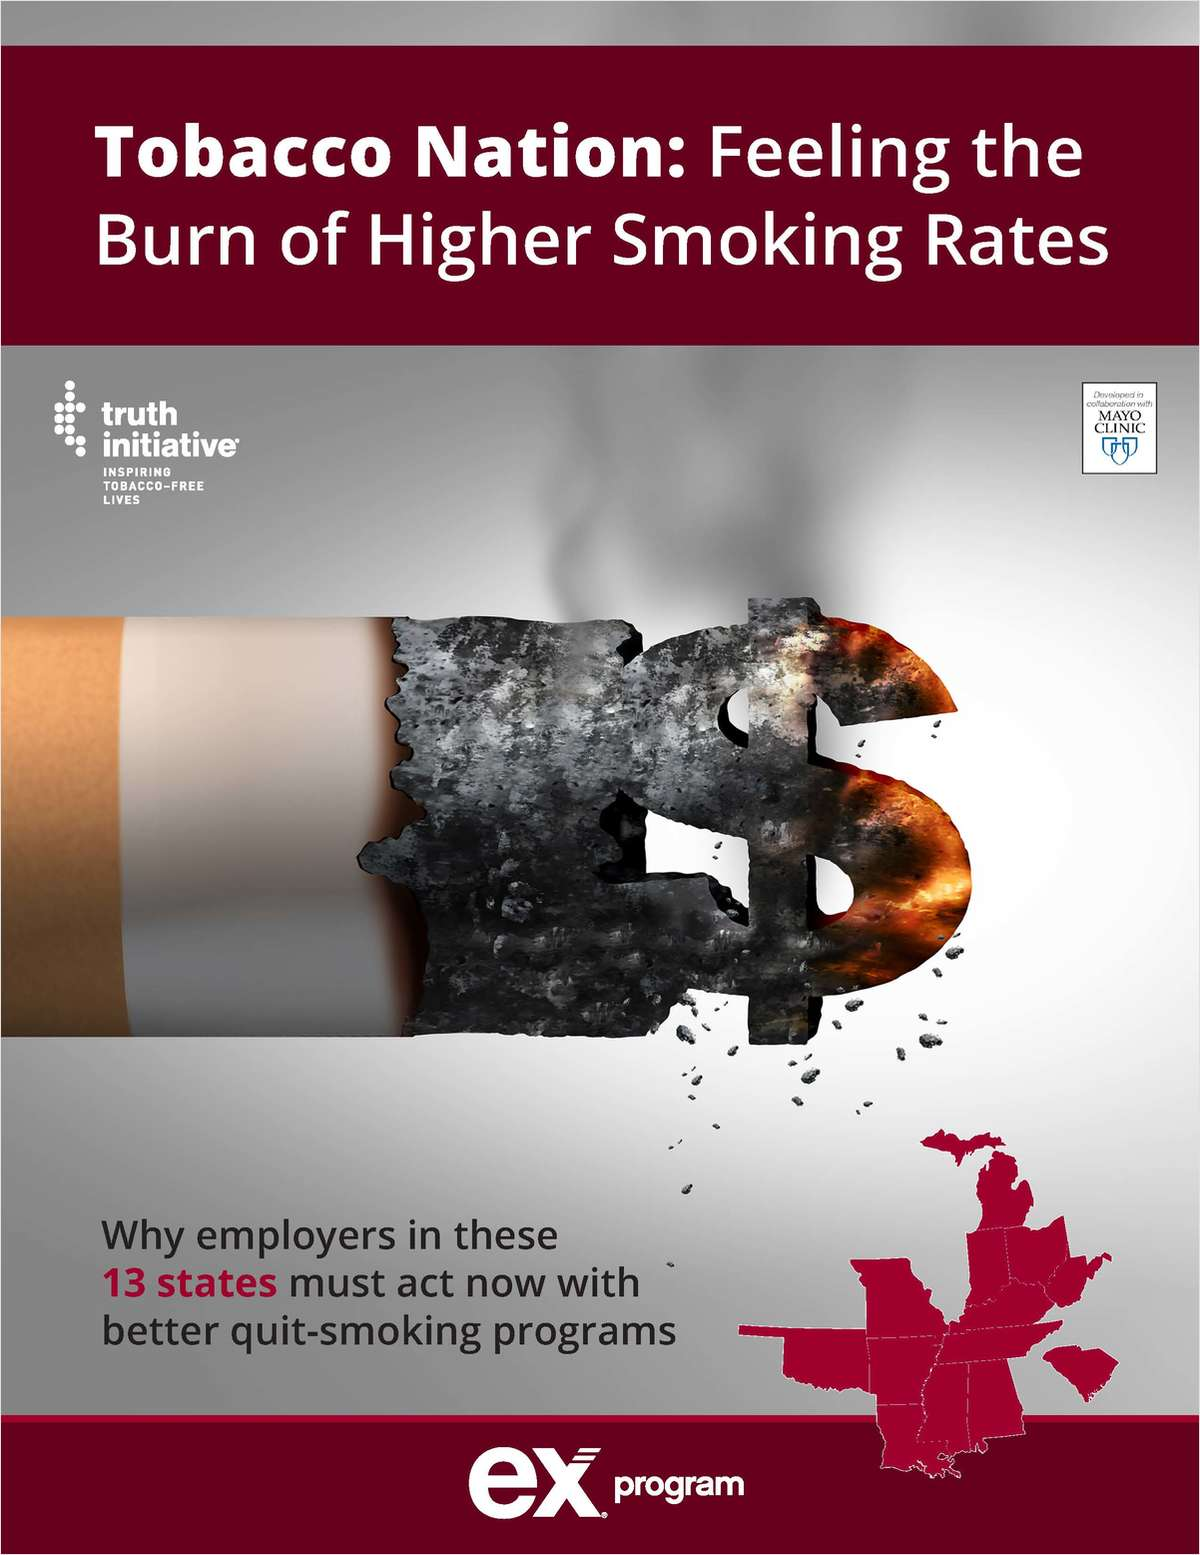 Tobacco Nation: Feeling the Burn of Higher Smoking Rates